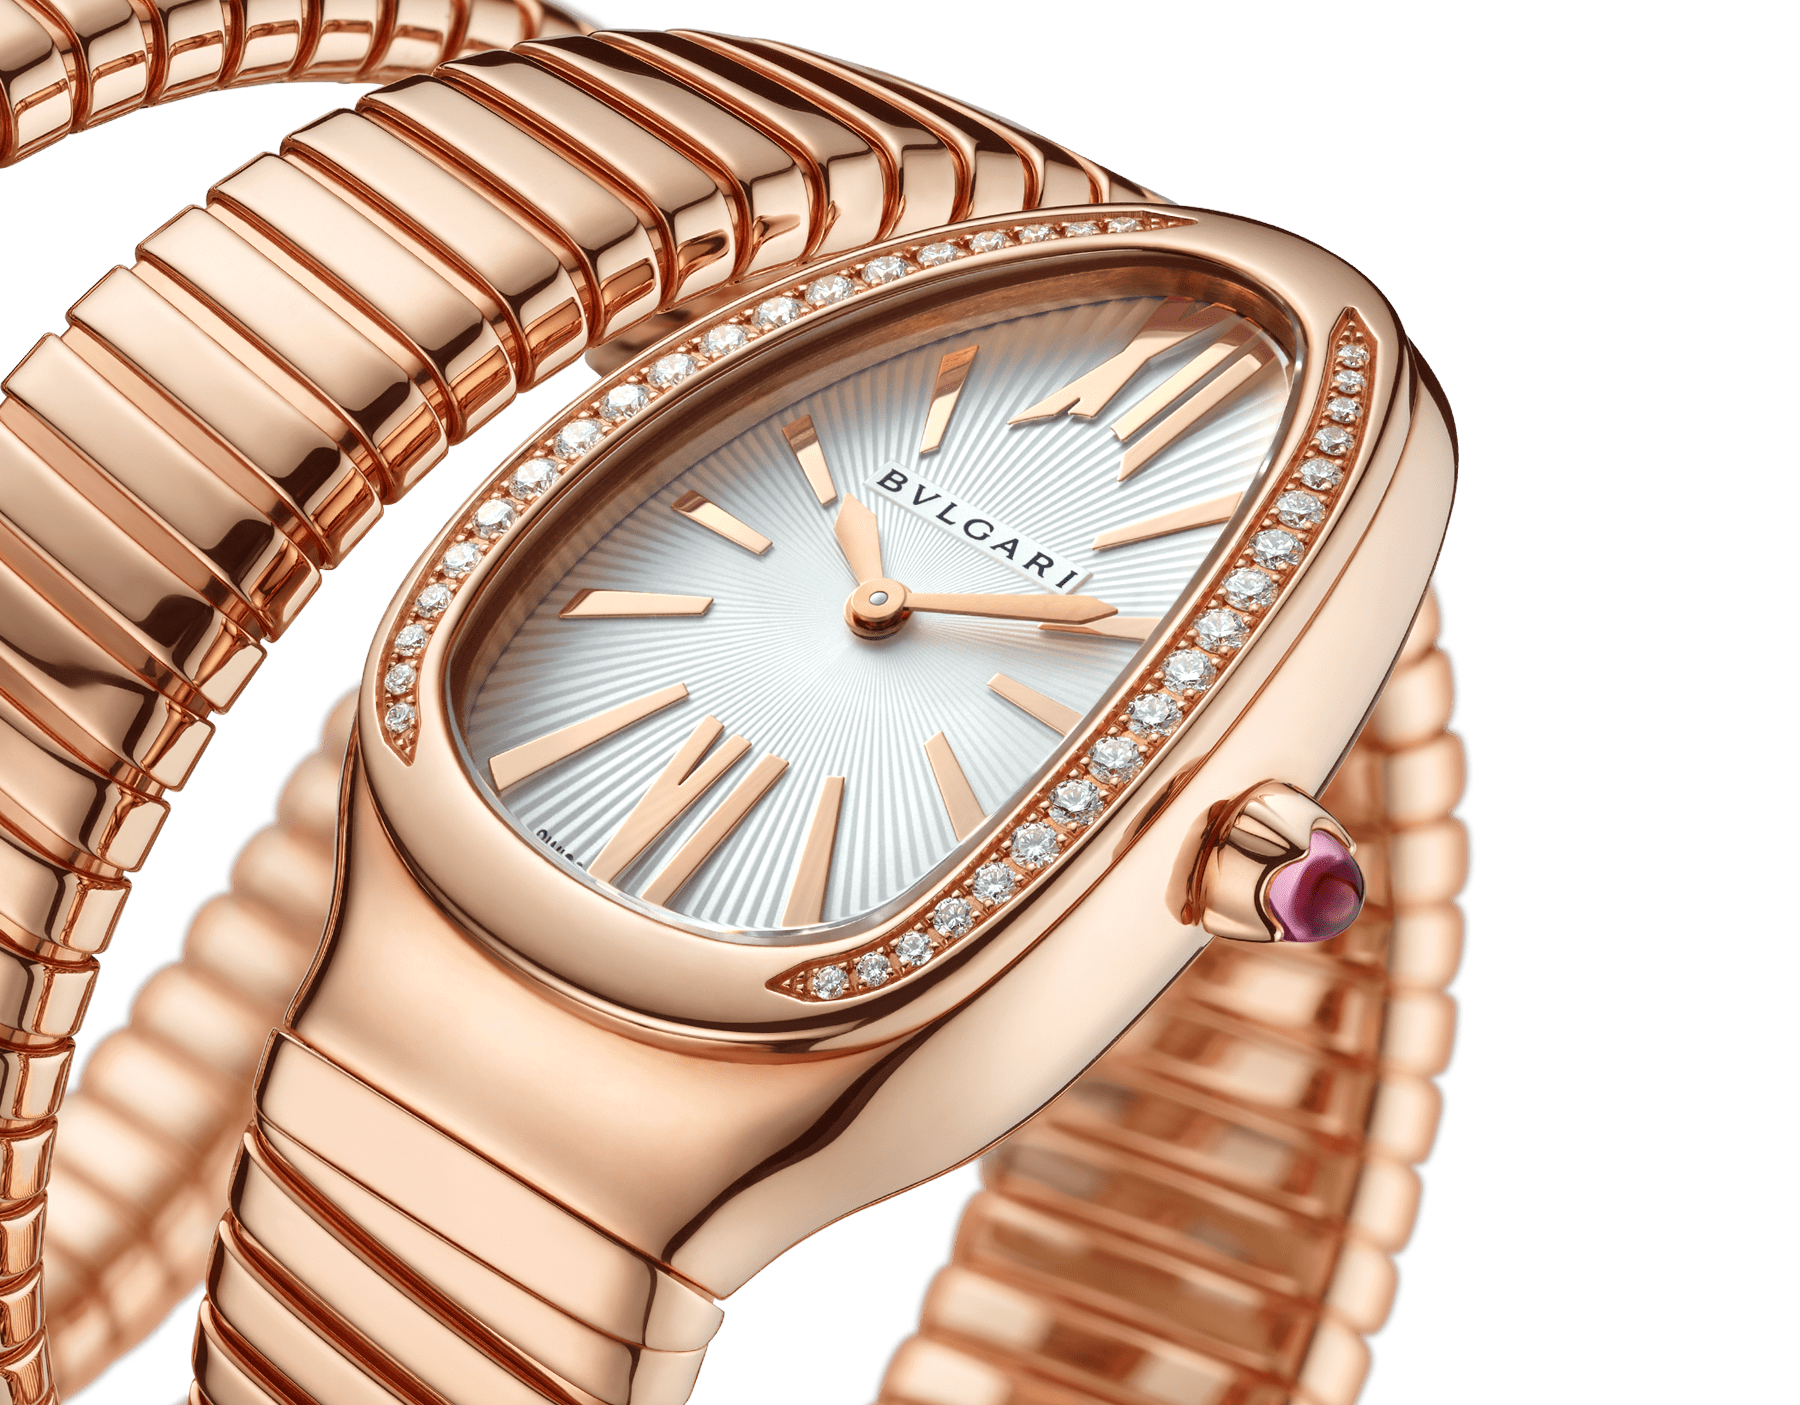 Serpenti Tubogas double spiral watch with 18 kt rose gold case set with brilliant-cut diamonds, silver opaline dial and 18 kt rose gold bracelet 103002 image 3